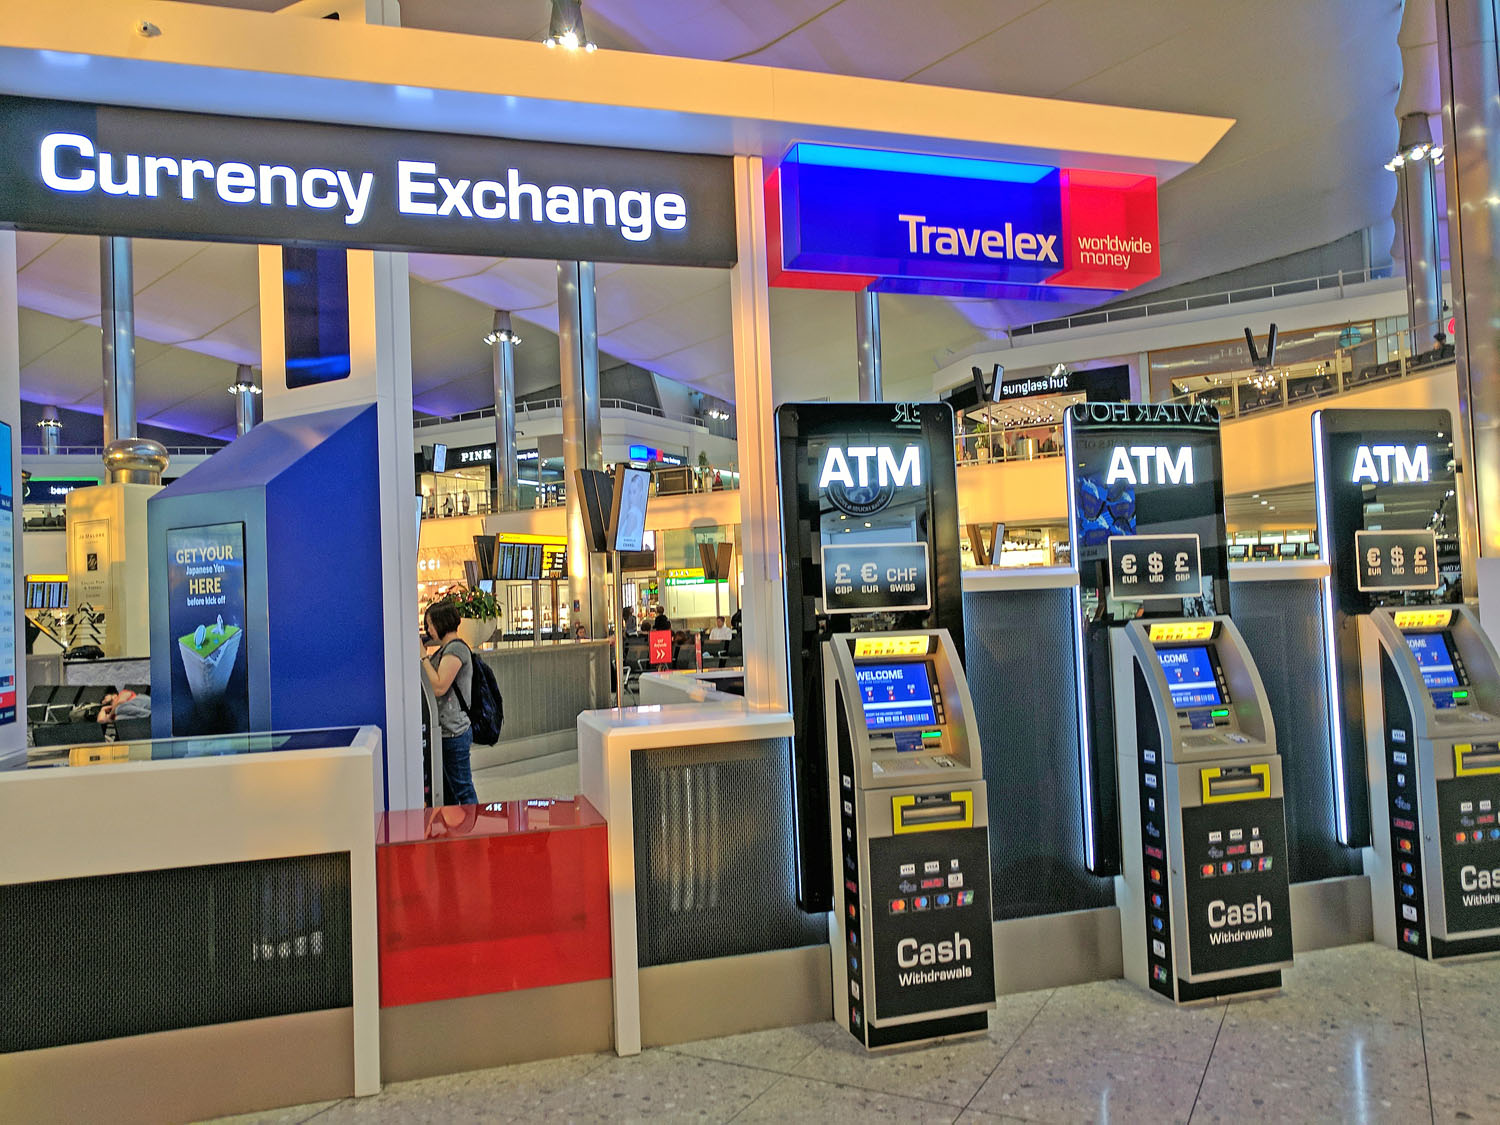 Airport kiosk is the last place to exchange money foreign currency.